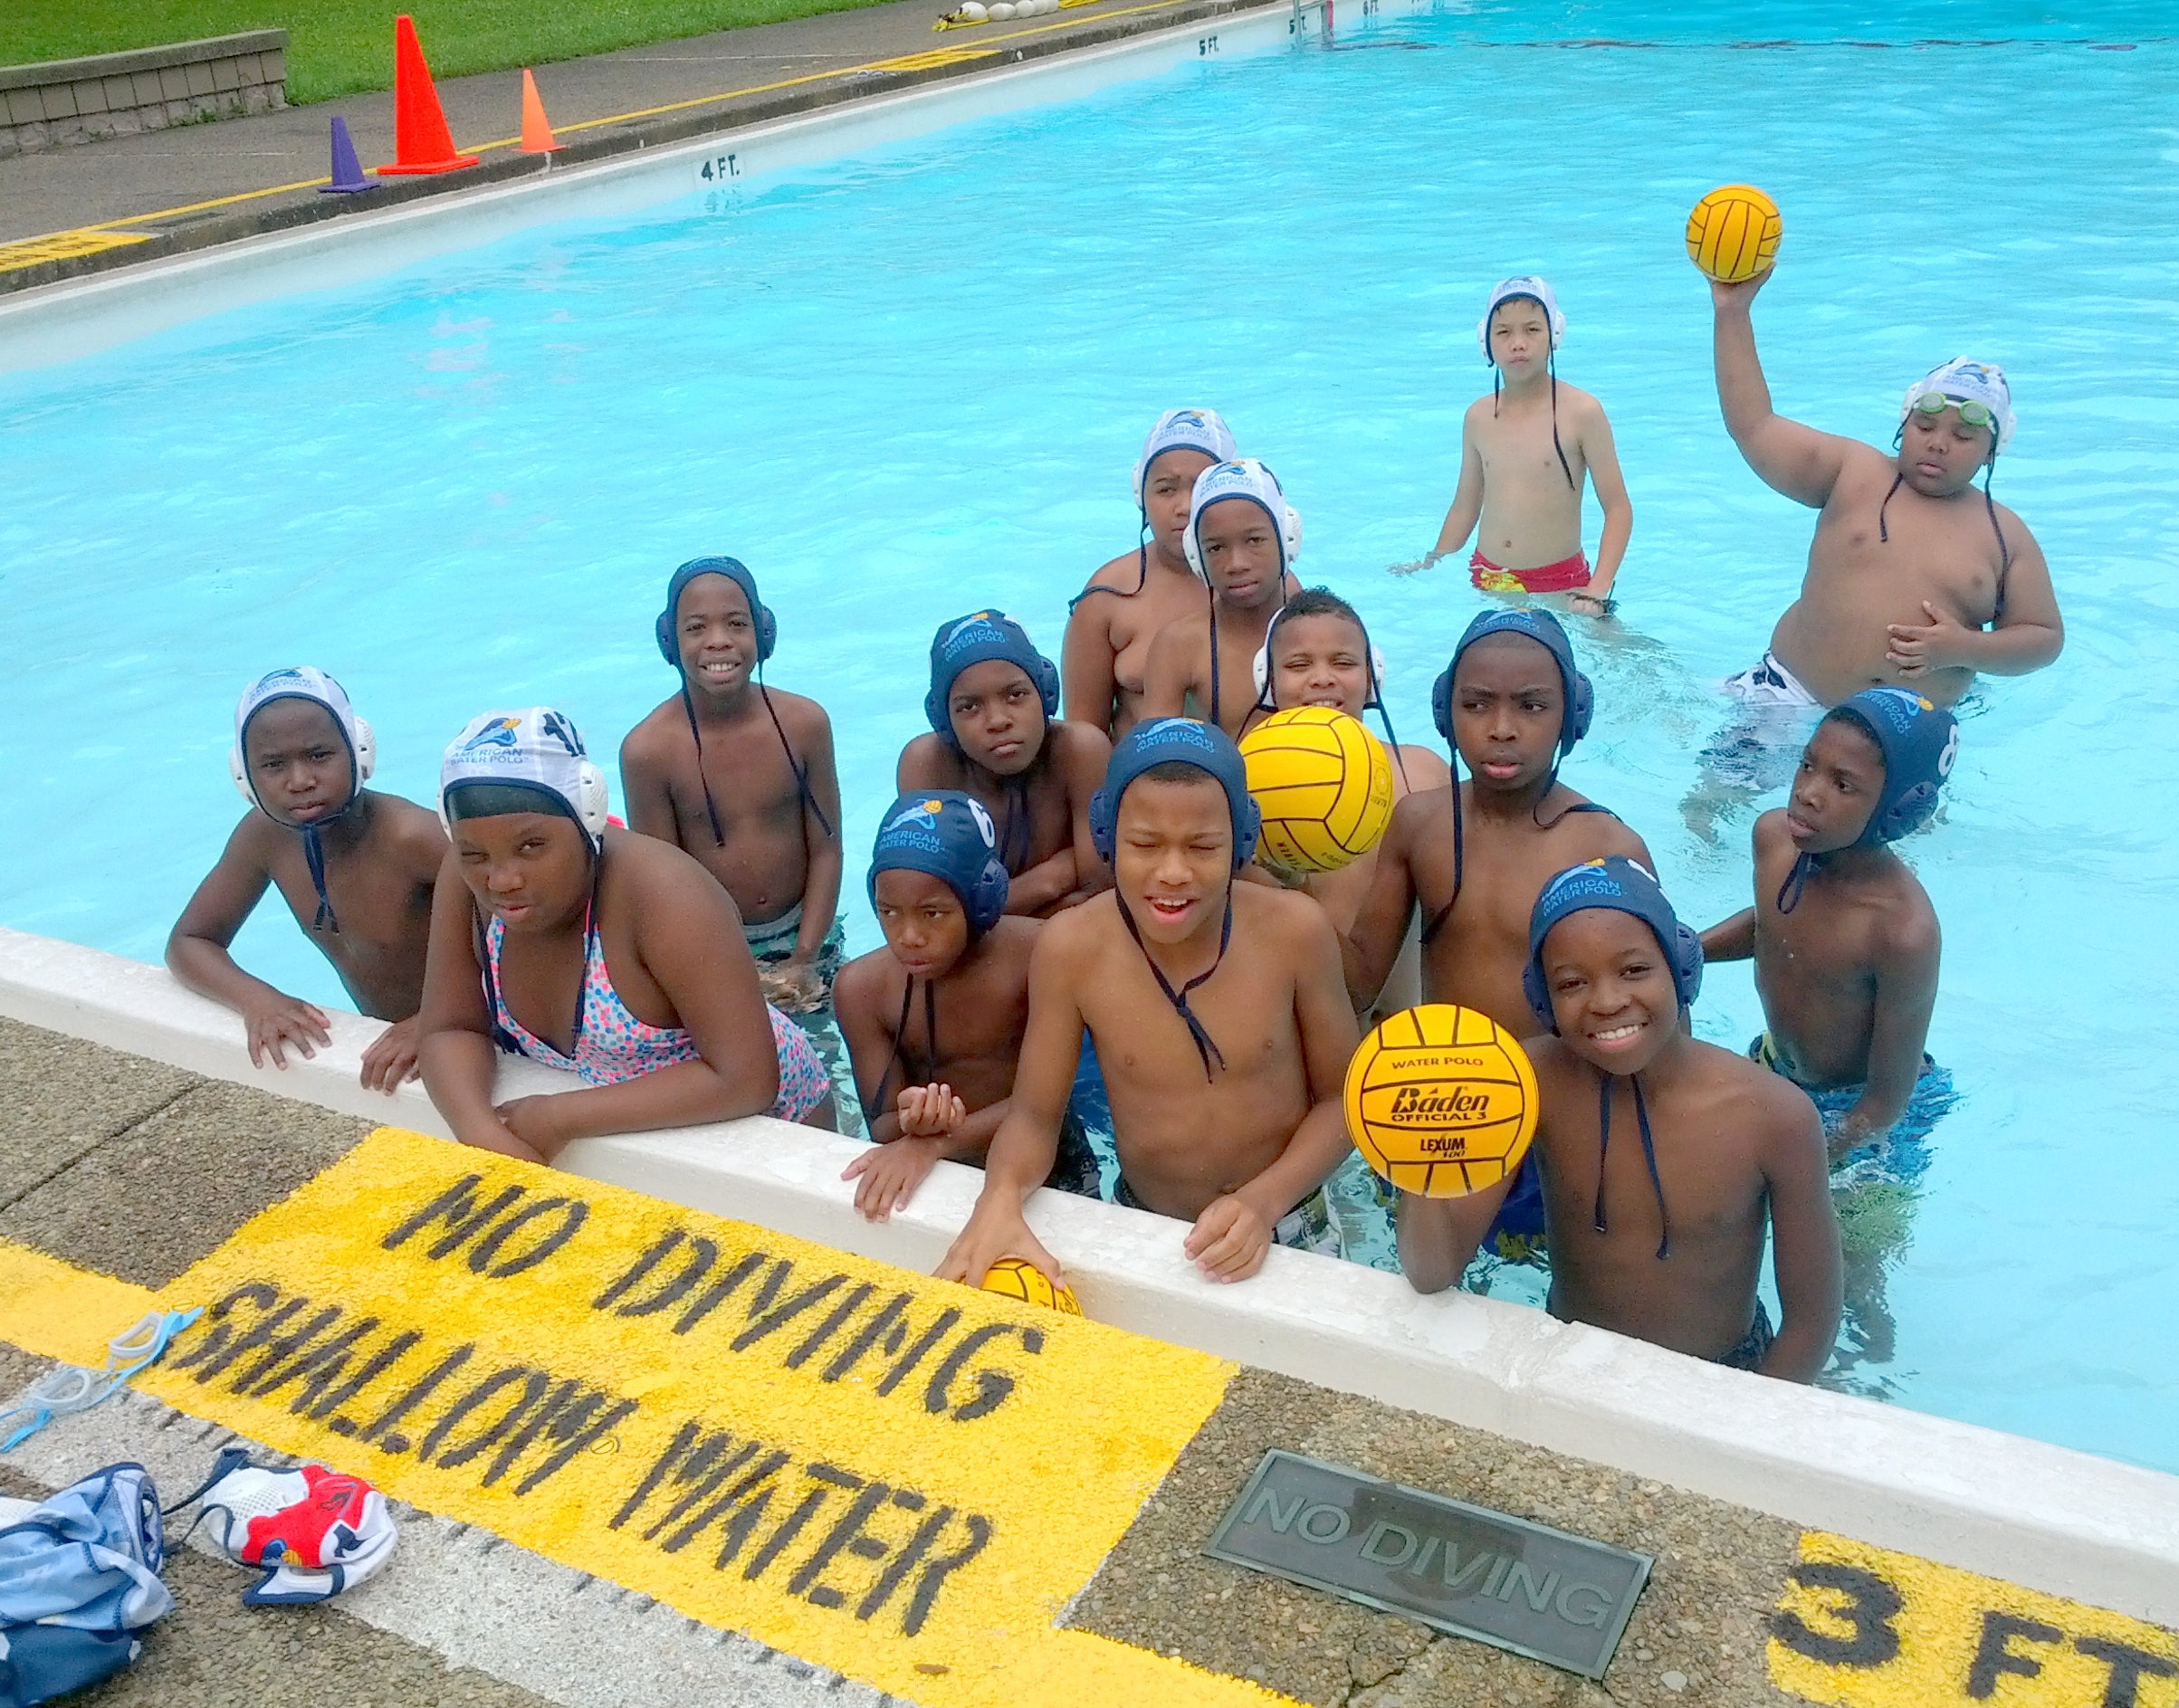 Garfield Gators in the pool after playing water polo